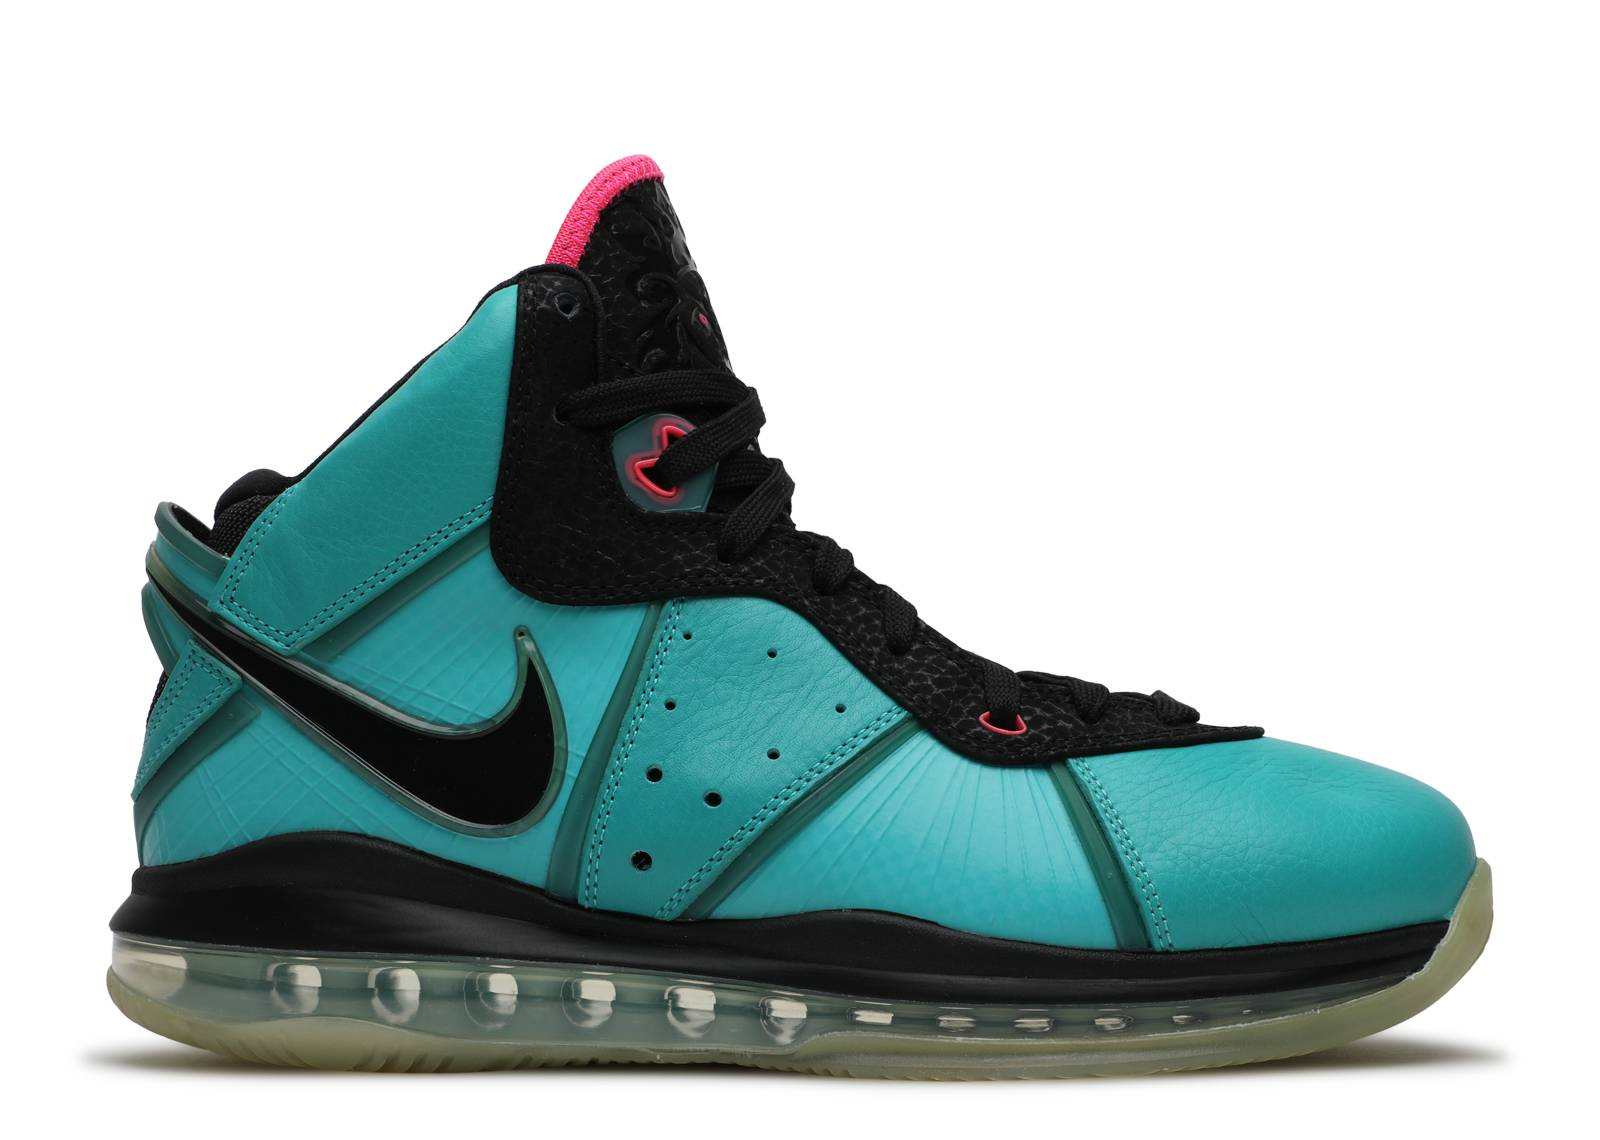 810d232705f5 Top 50 Basketball Shoes of All Time